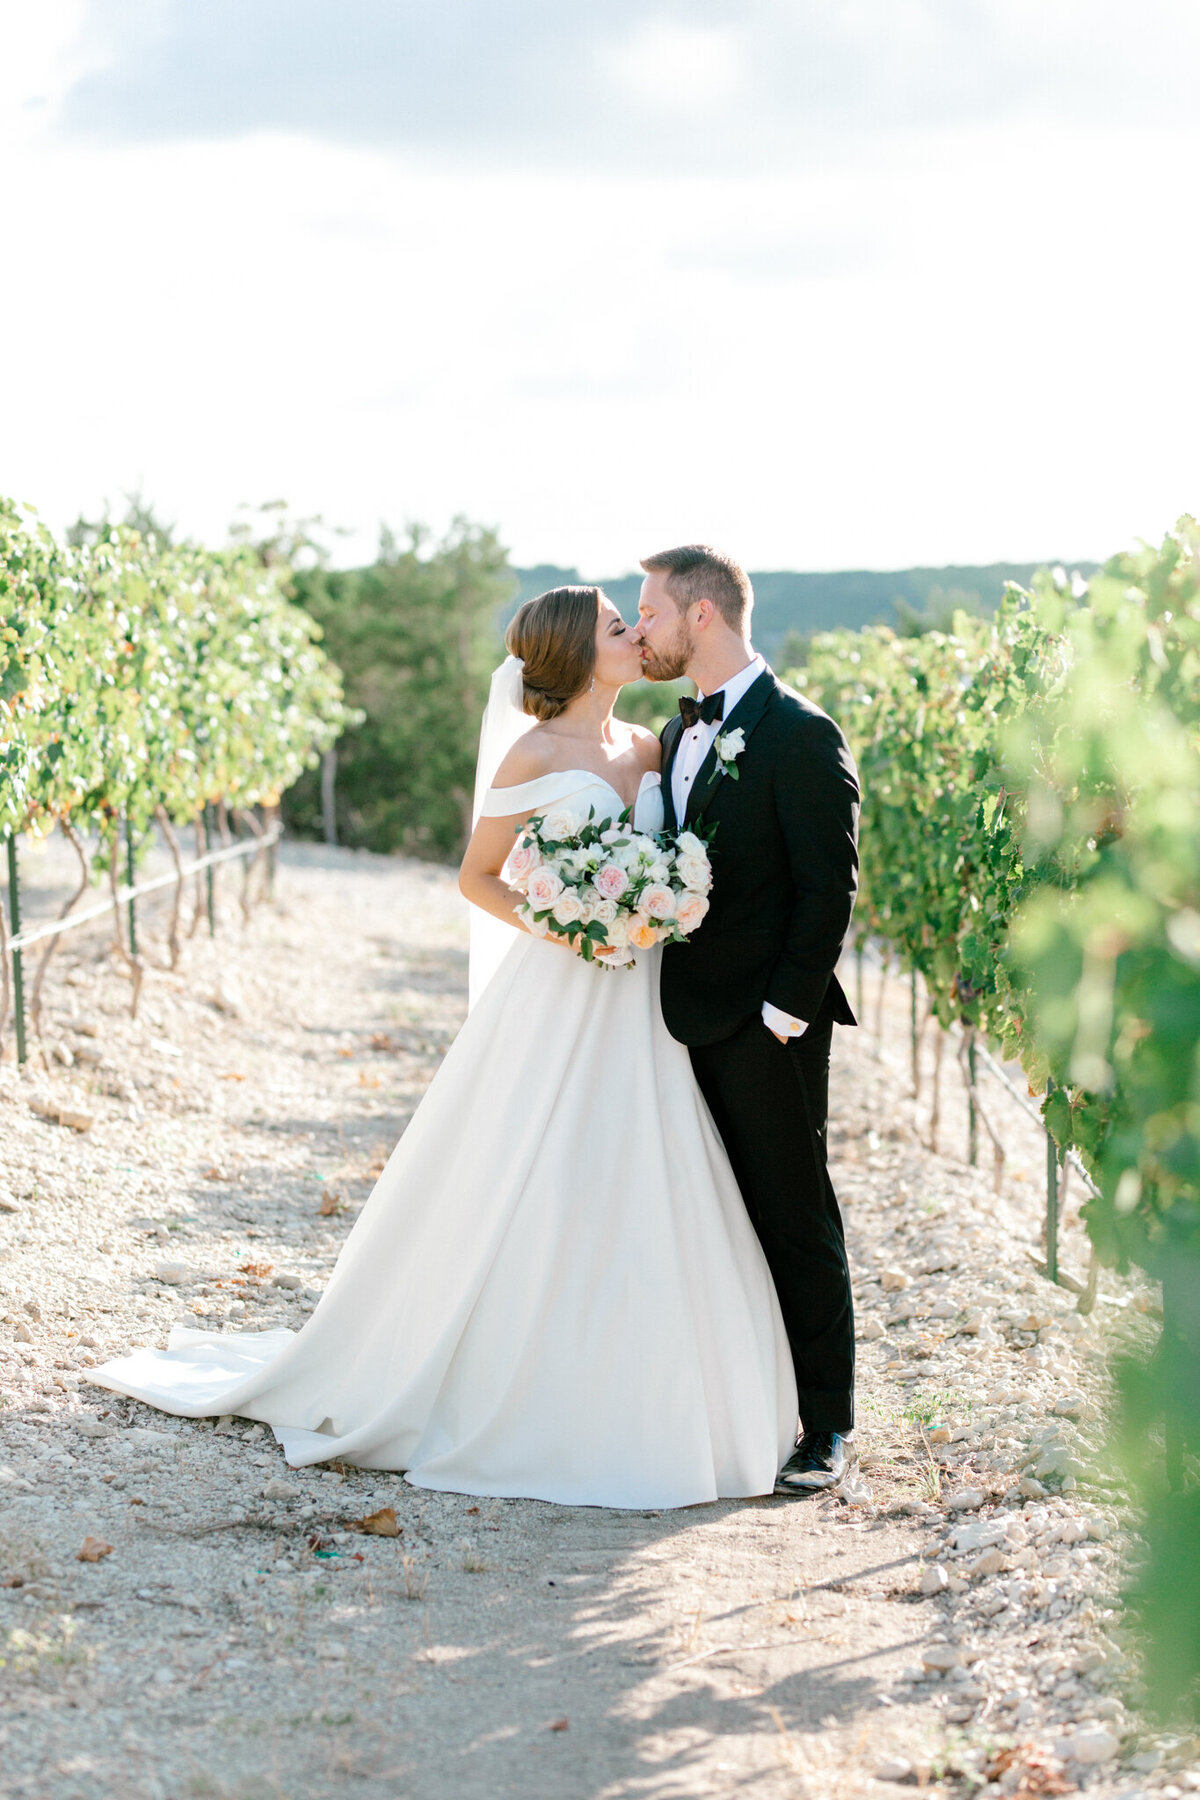 Lexi Broughton & Garrett Greer Wedding at Dove Ridge Vineyards | Sami Kathryn Photography | Dallas Wedding Photography-5